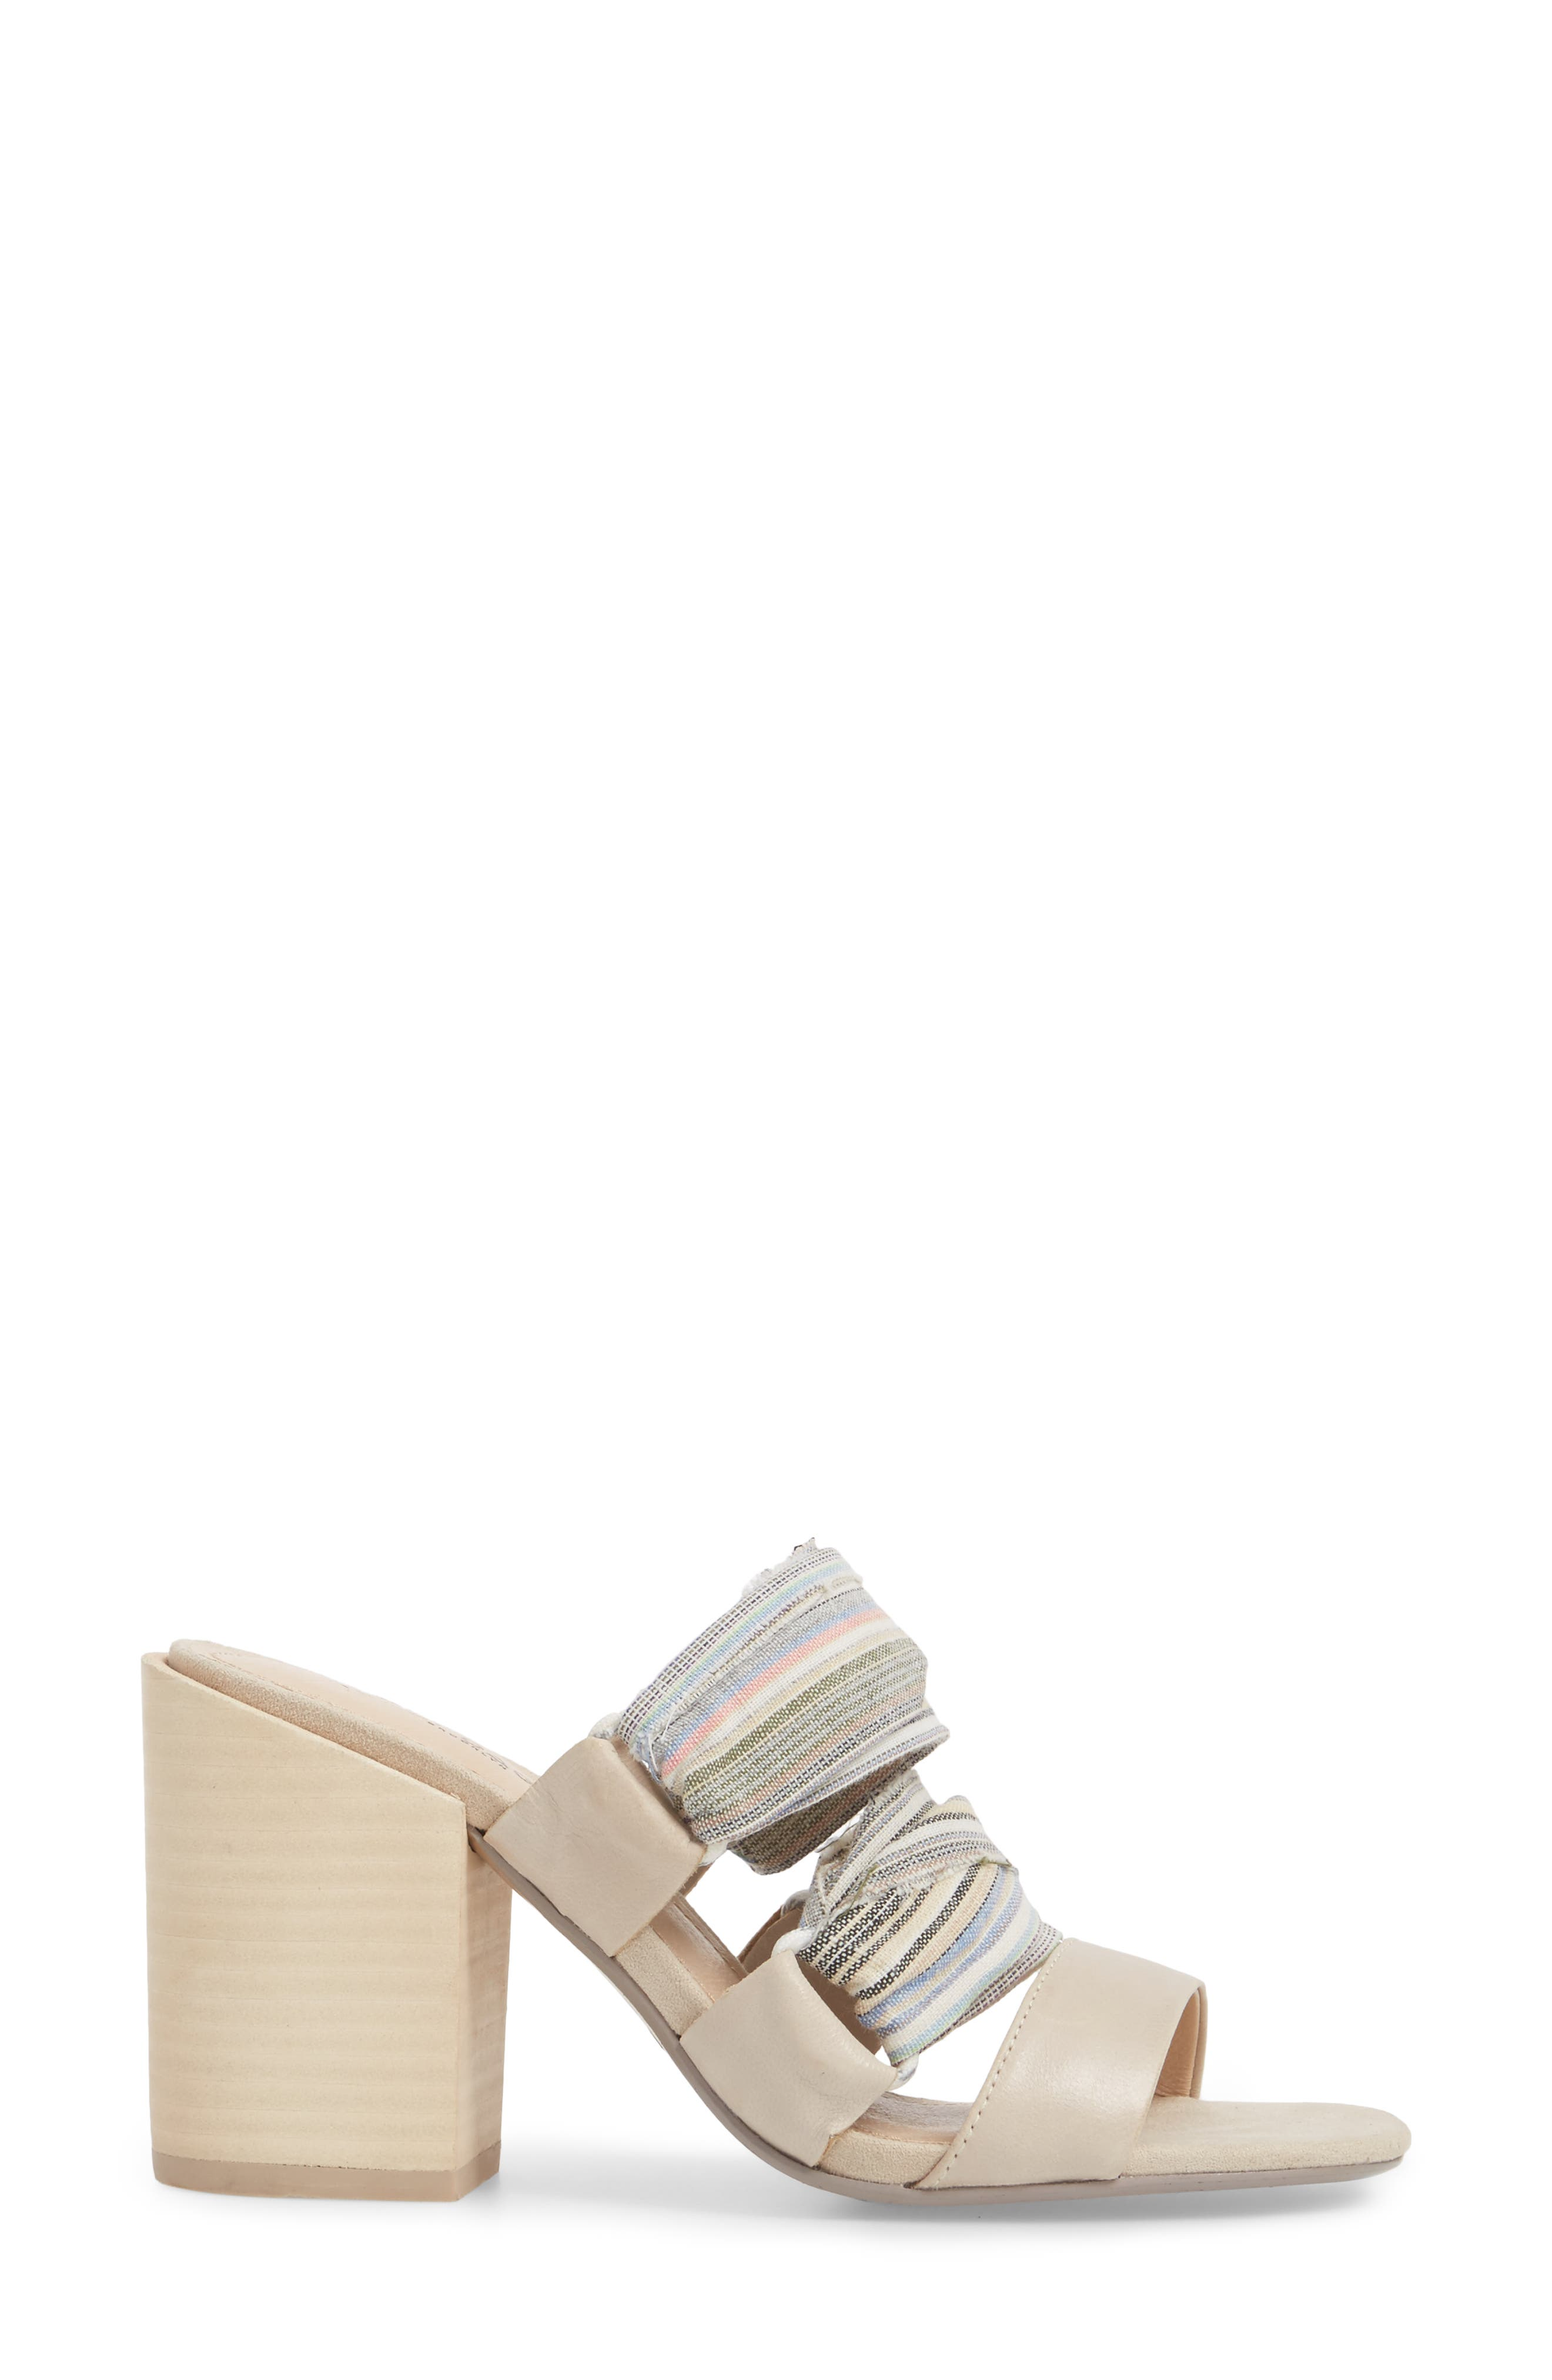 Monaco Block Heel Sandal,                             Alternate thumbnail 3, color,                             Bone/ Multi